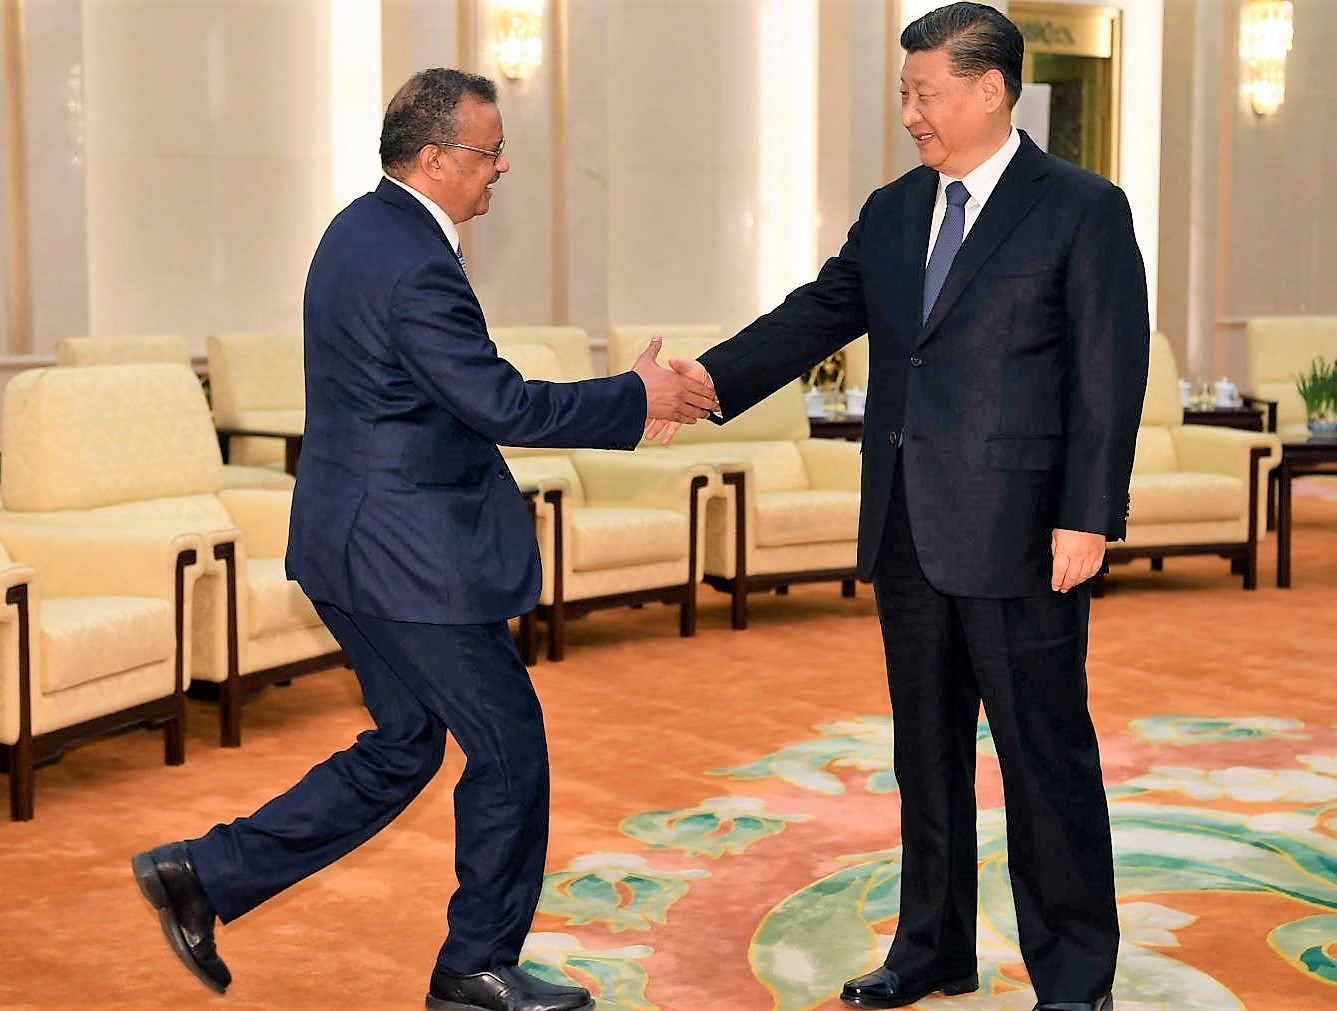 https://www.epsilontheory.com/wp-content/uploads/tedros-and-xi-2.jpg